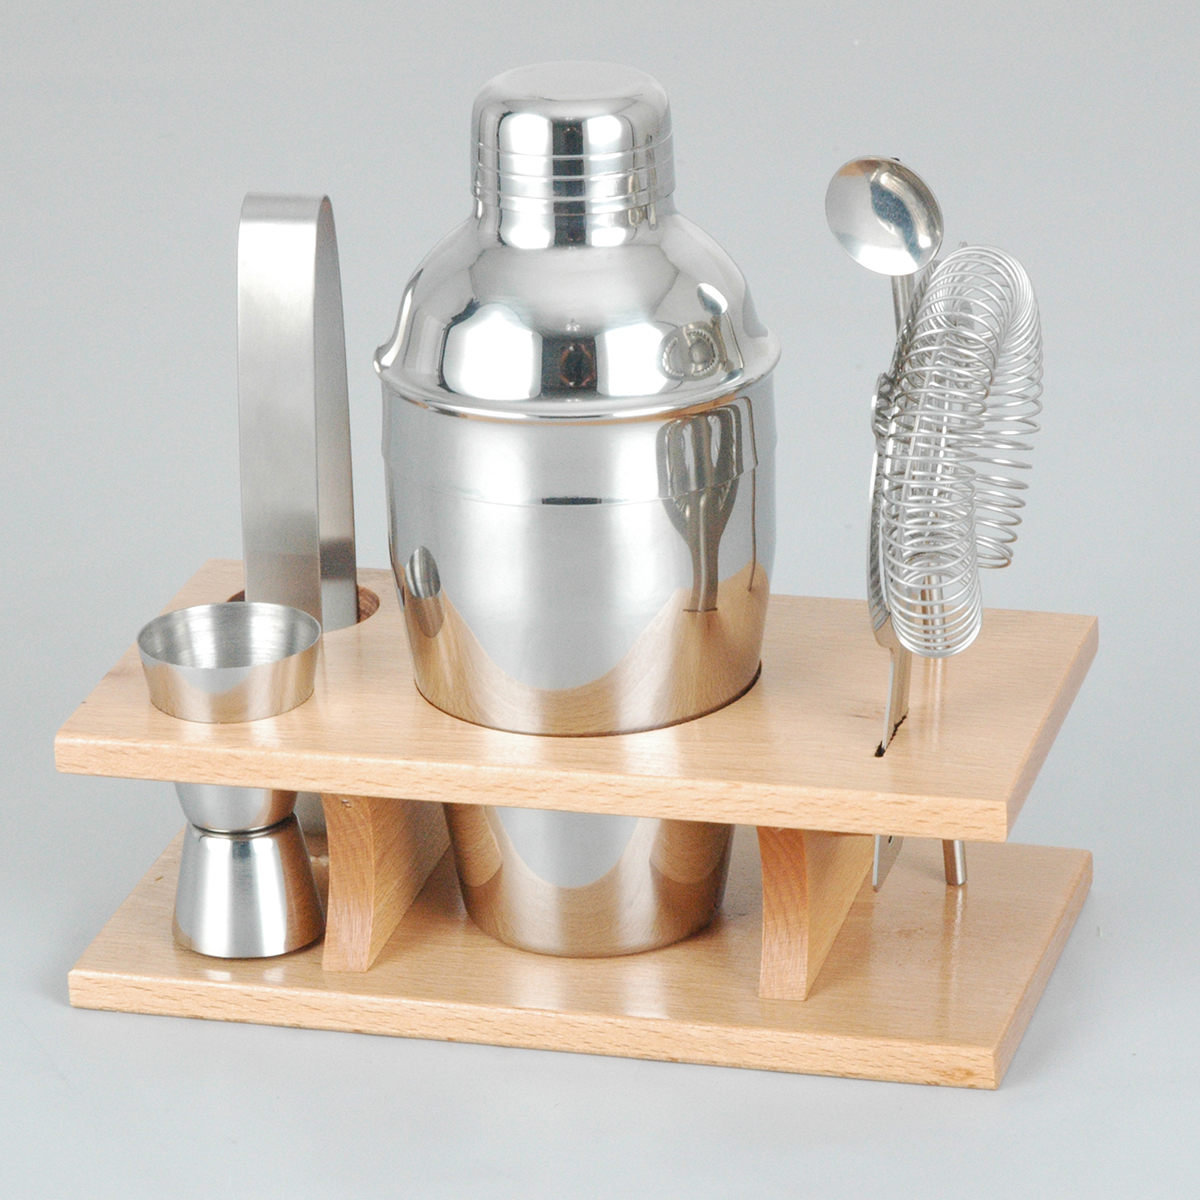 350ml Stainless Steel Cocktail Shaker Mixer Drink Bartender Martini Tools Bar Set Kit Party Bartender Tool